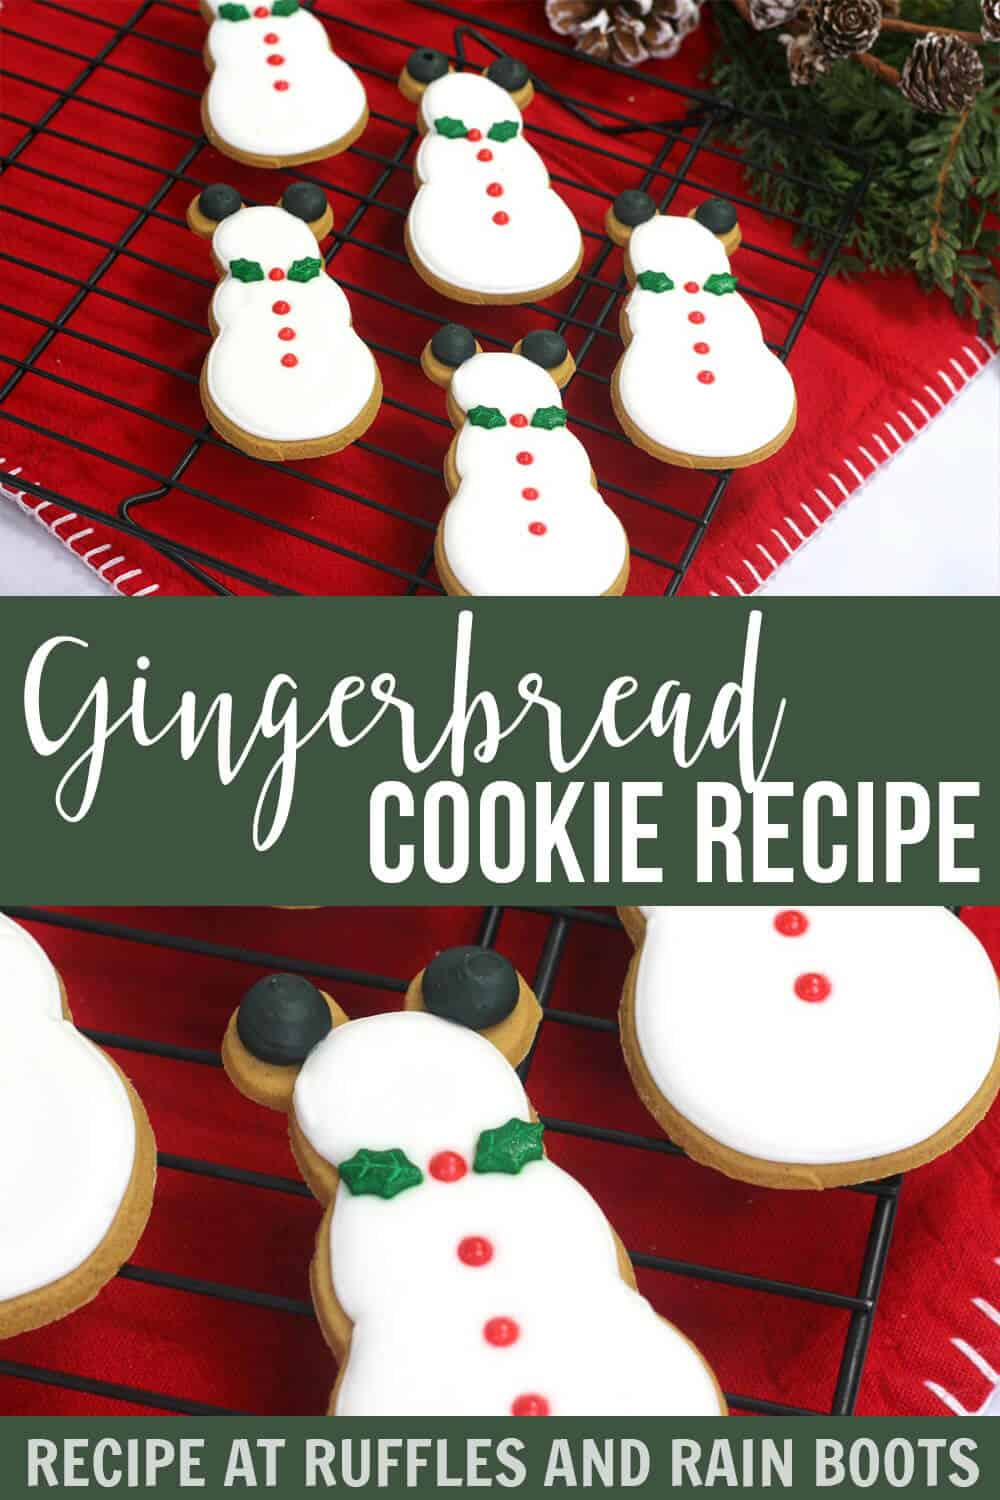 photo collage of mickey mouse snowman cookies with text which reads Easy Roll Out Gingerbread Cookie Recipe